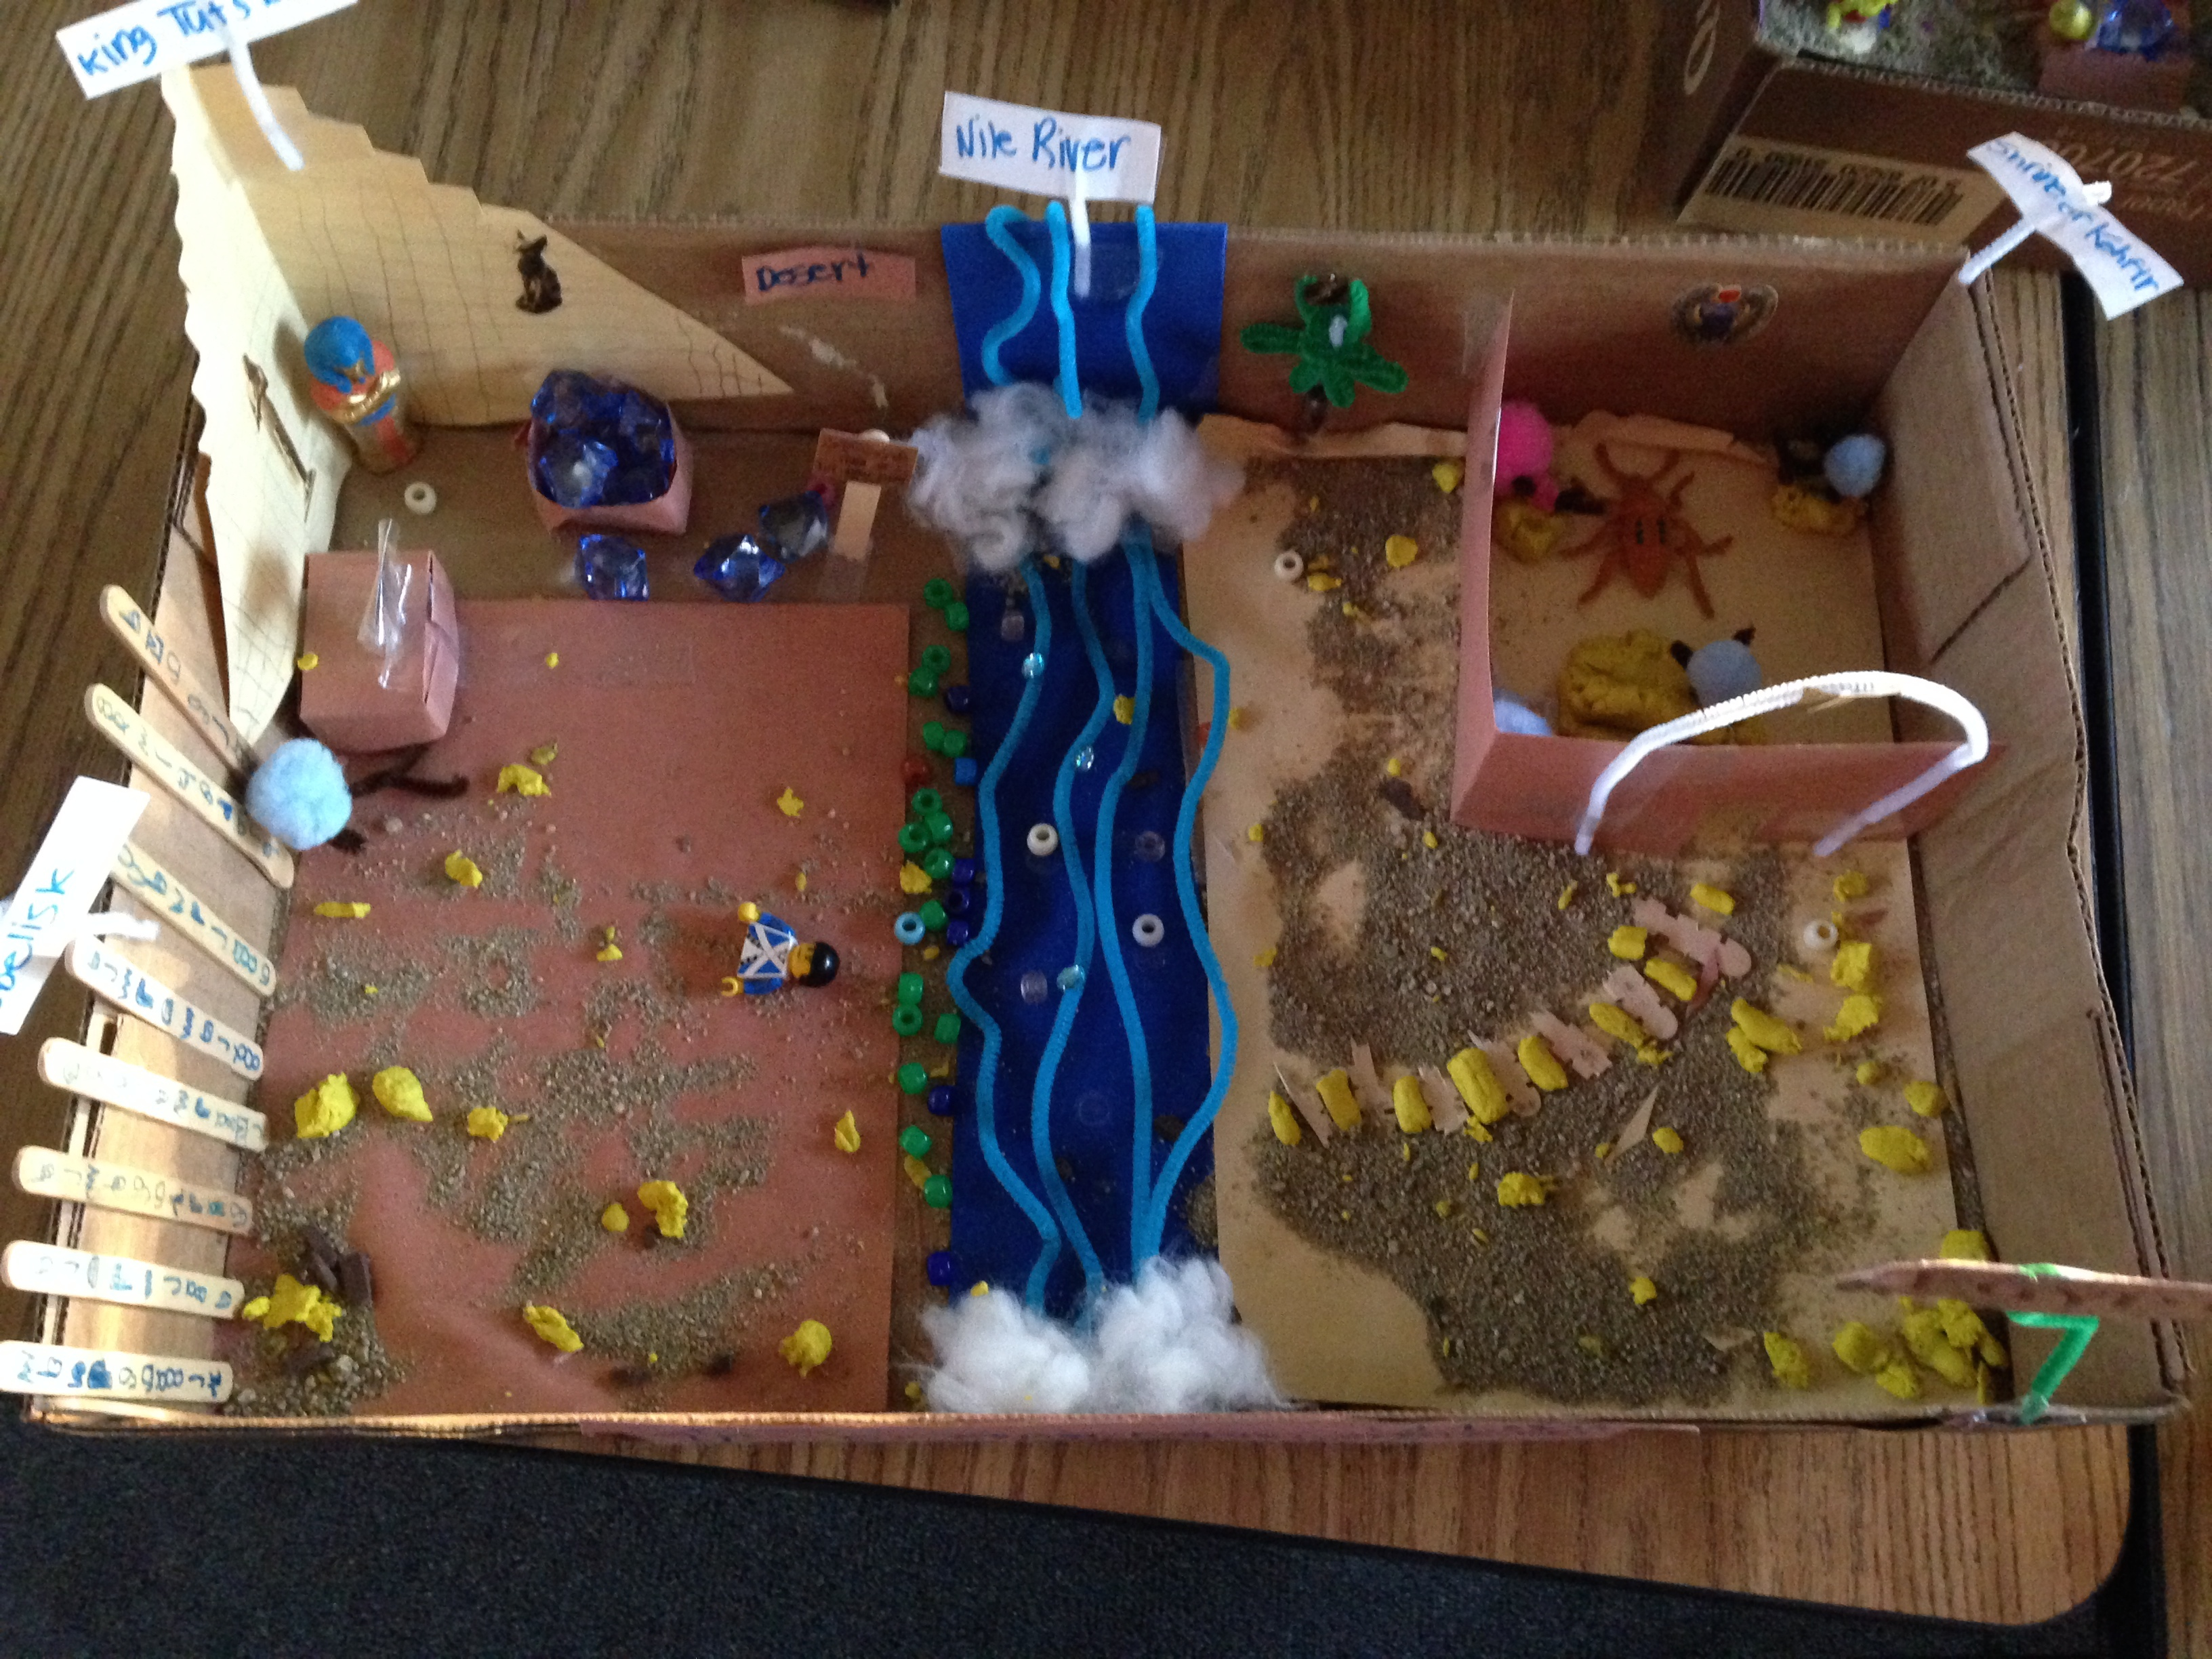 Ancient Egypt Diorama Fun